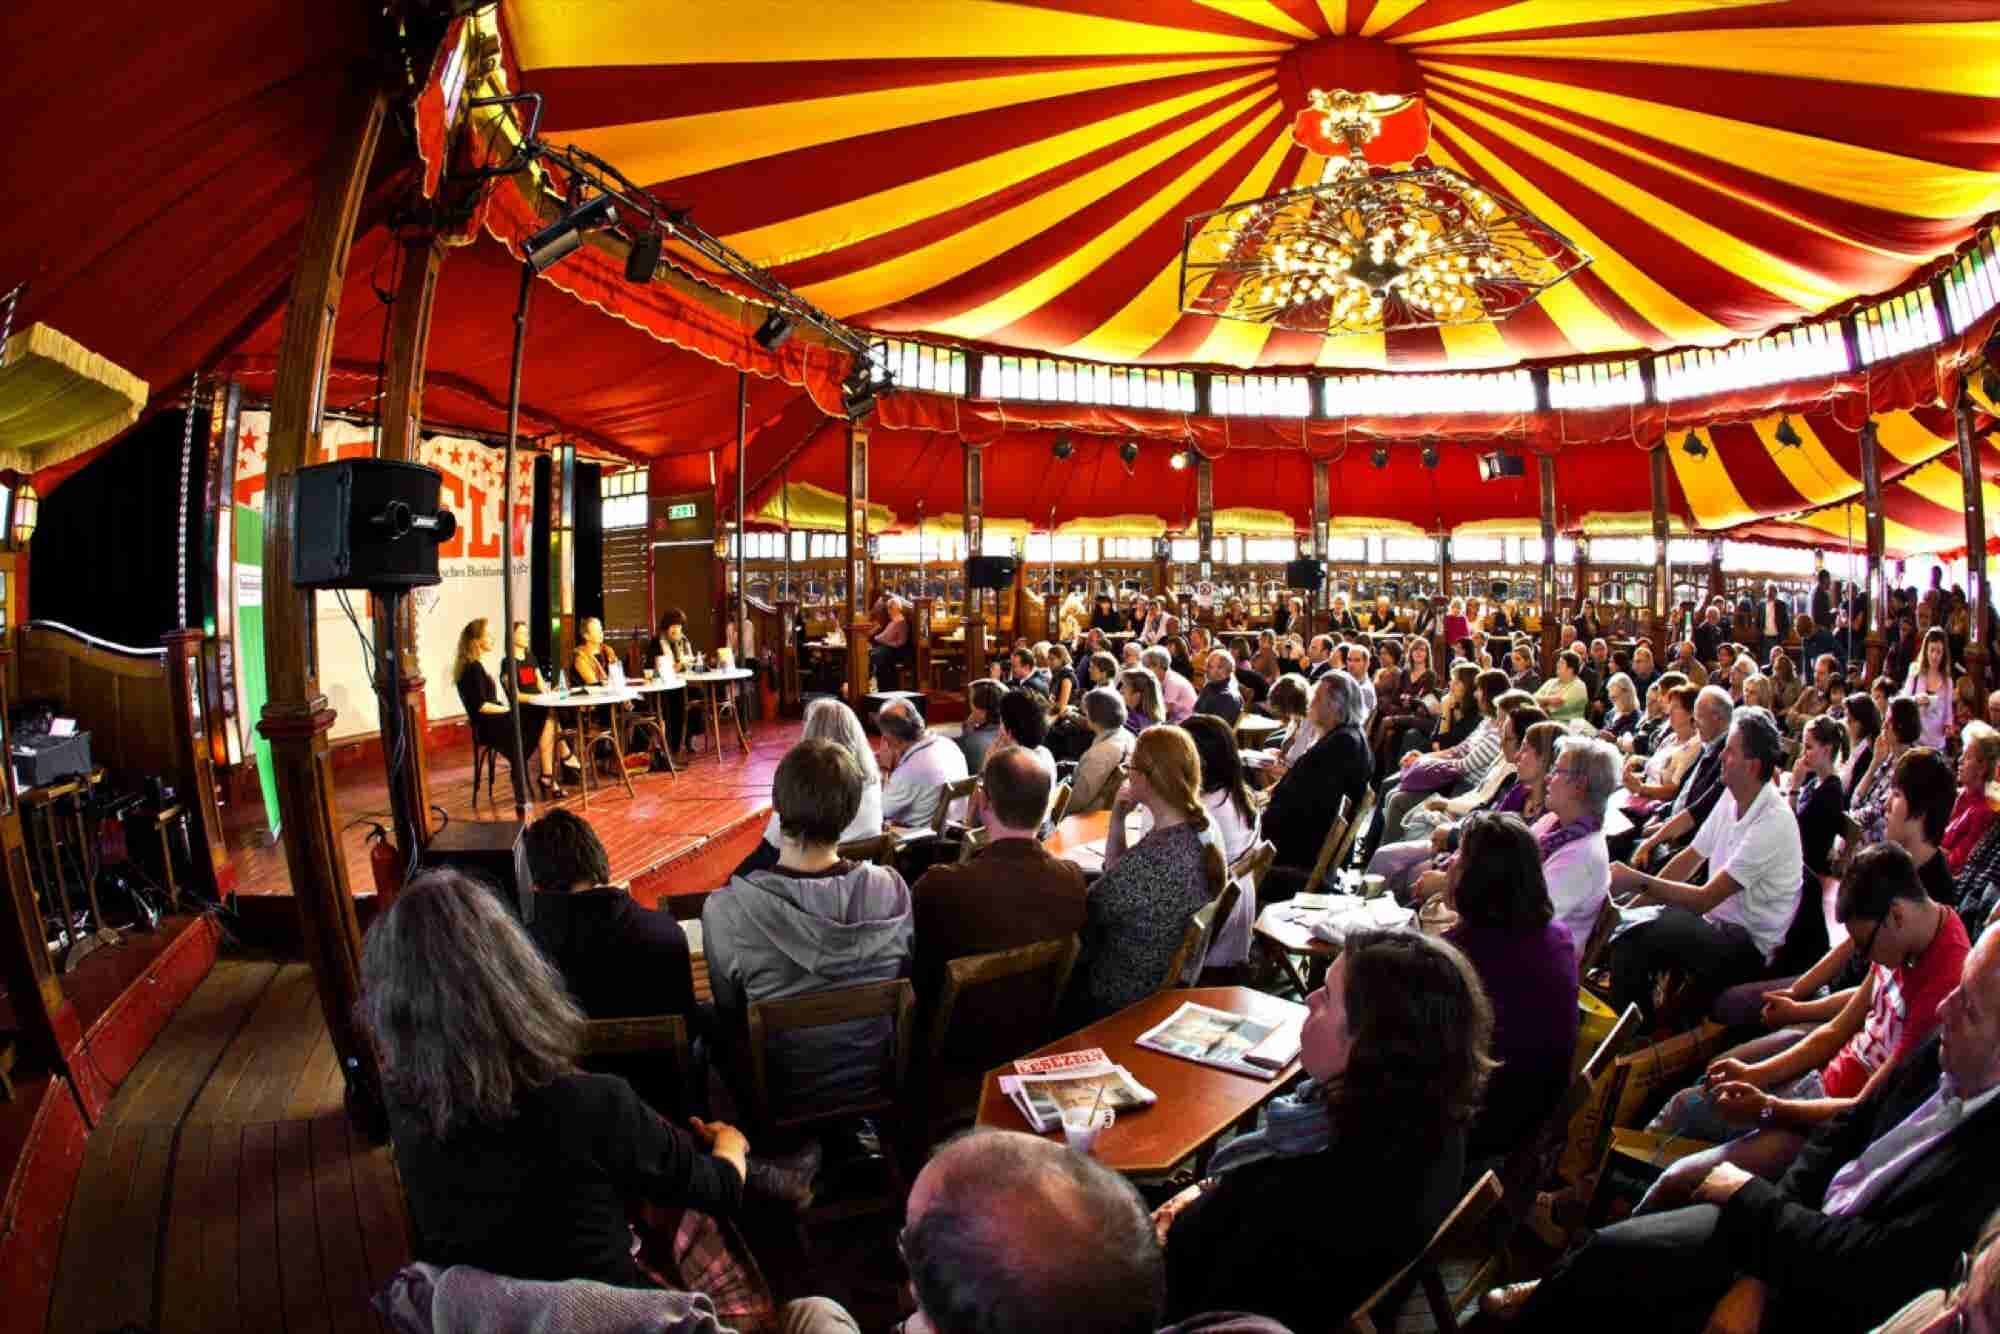 Host a Big Event, and Watch Your Customer Base Grow